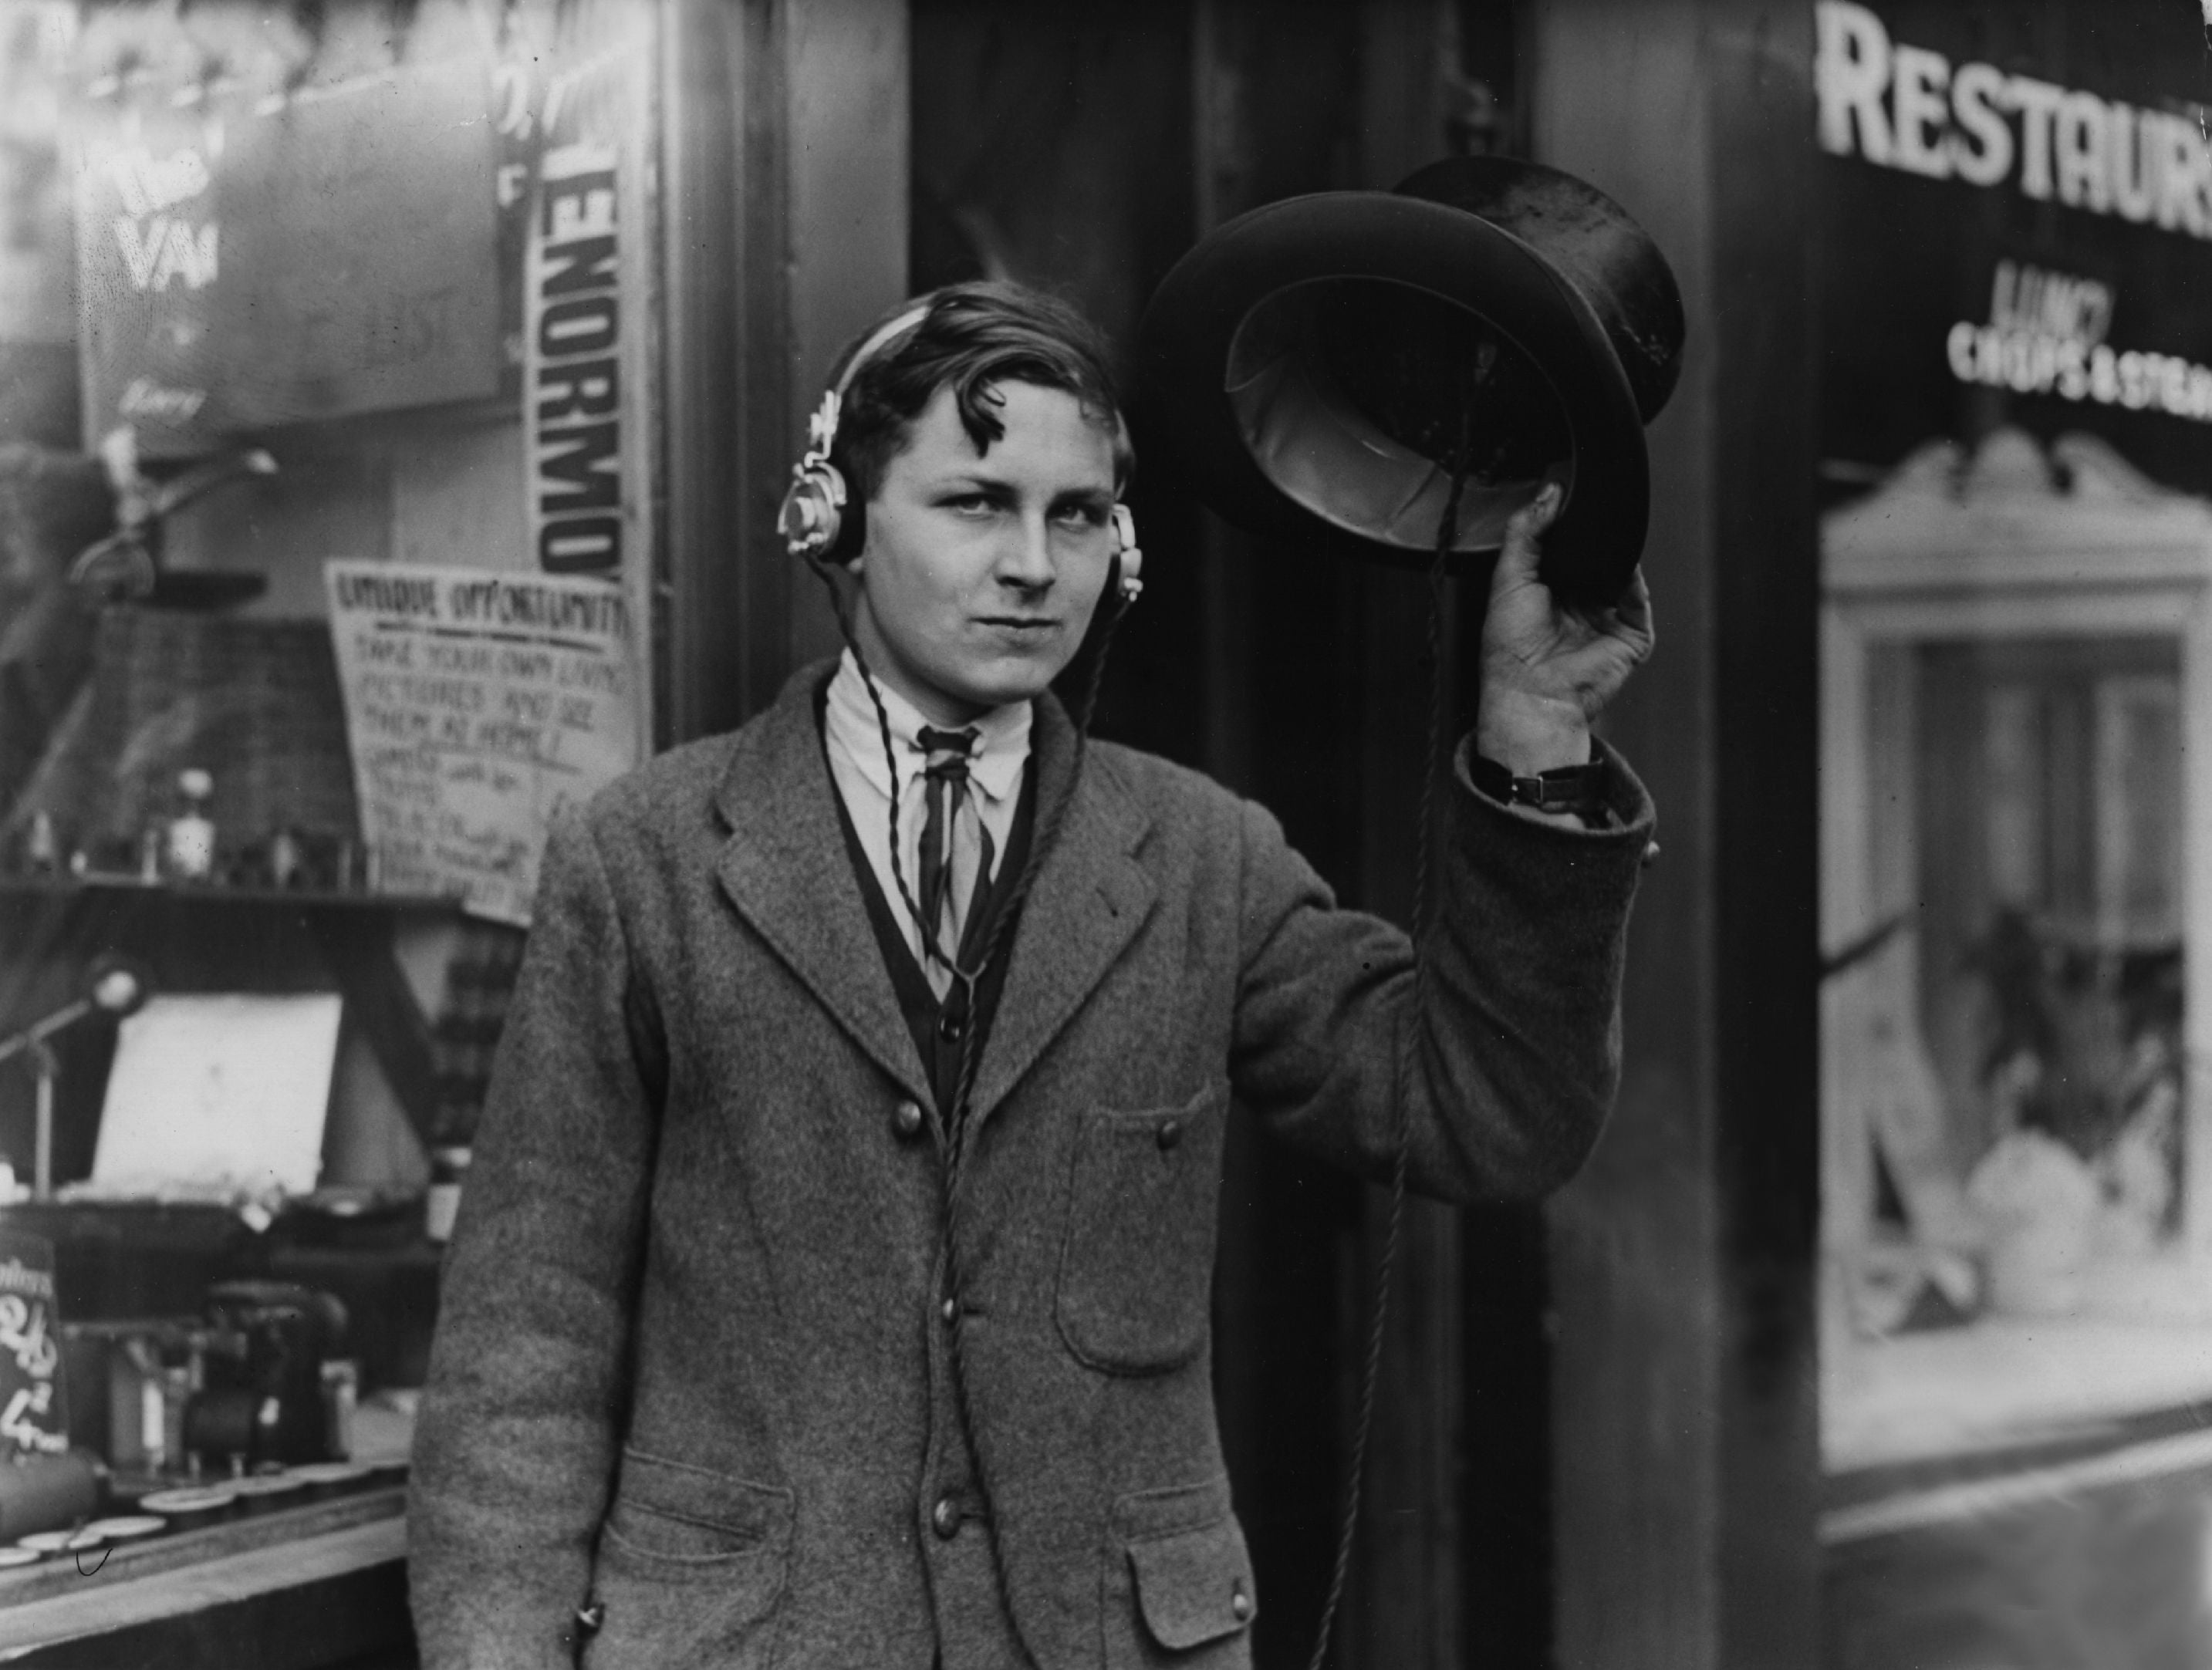 Wearable Tech In 1922 Was a Radio Inside Your Top Hat